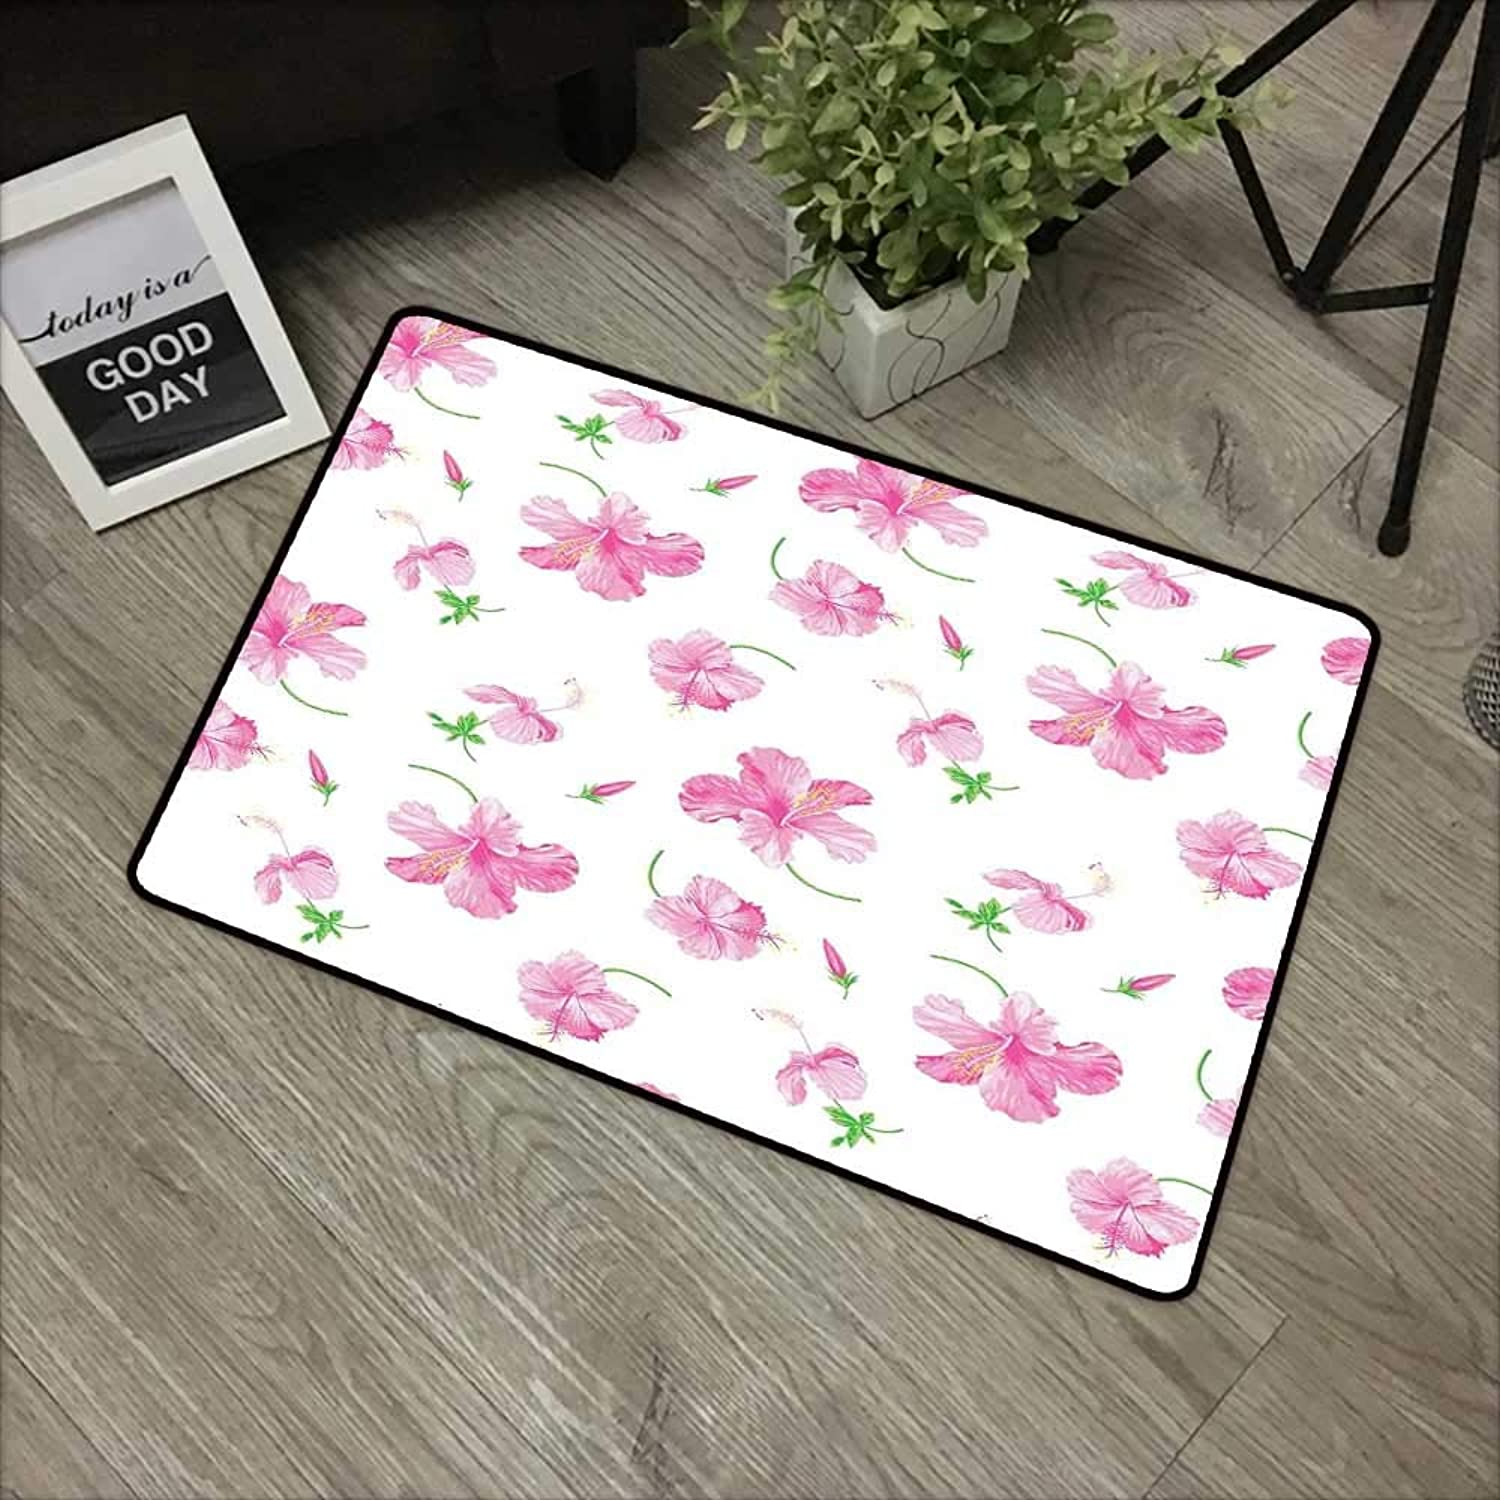 Interior door mat W35 x L59 INCH Floral,Hibiscus Flowers on Plain Background Decorative Floral Patterns Country Style Home Decor,Pink White Easy to clean, no deformation, no fading Non-slip Door Mat C